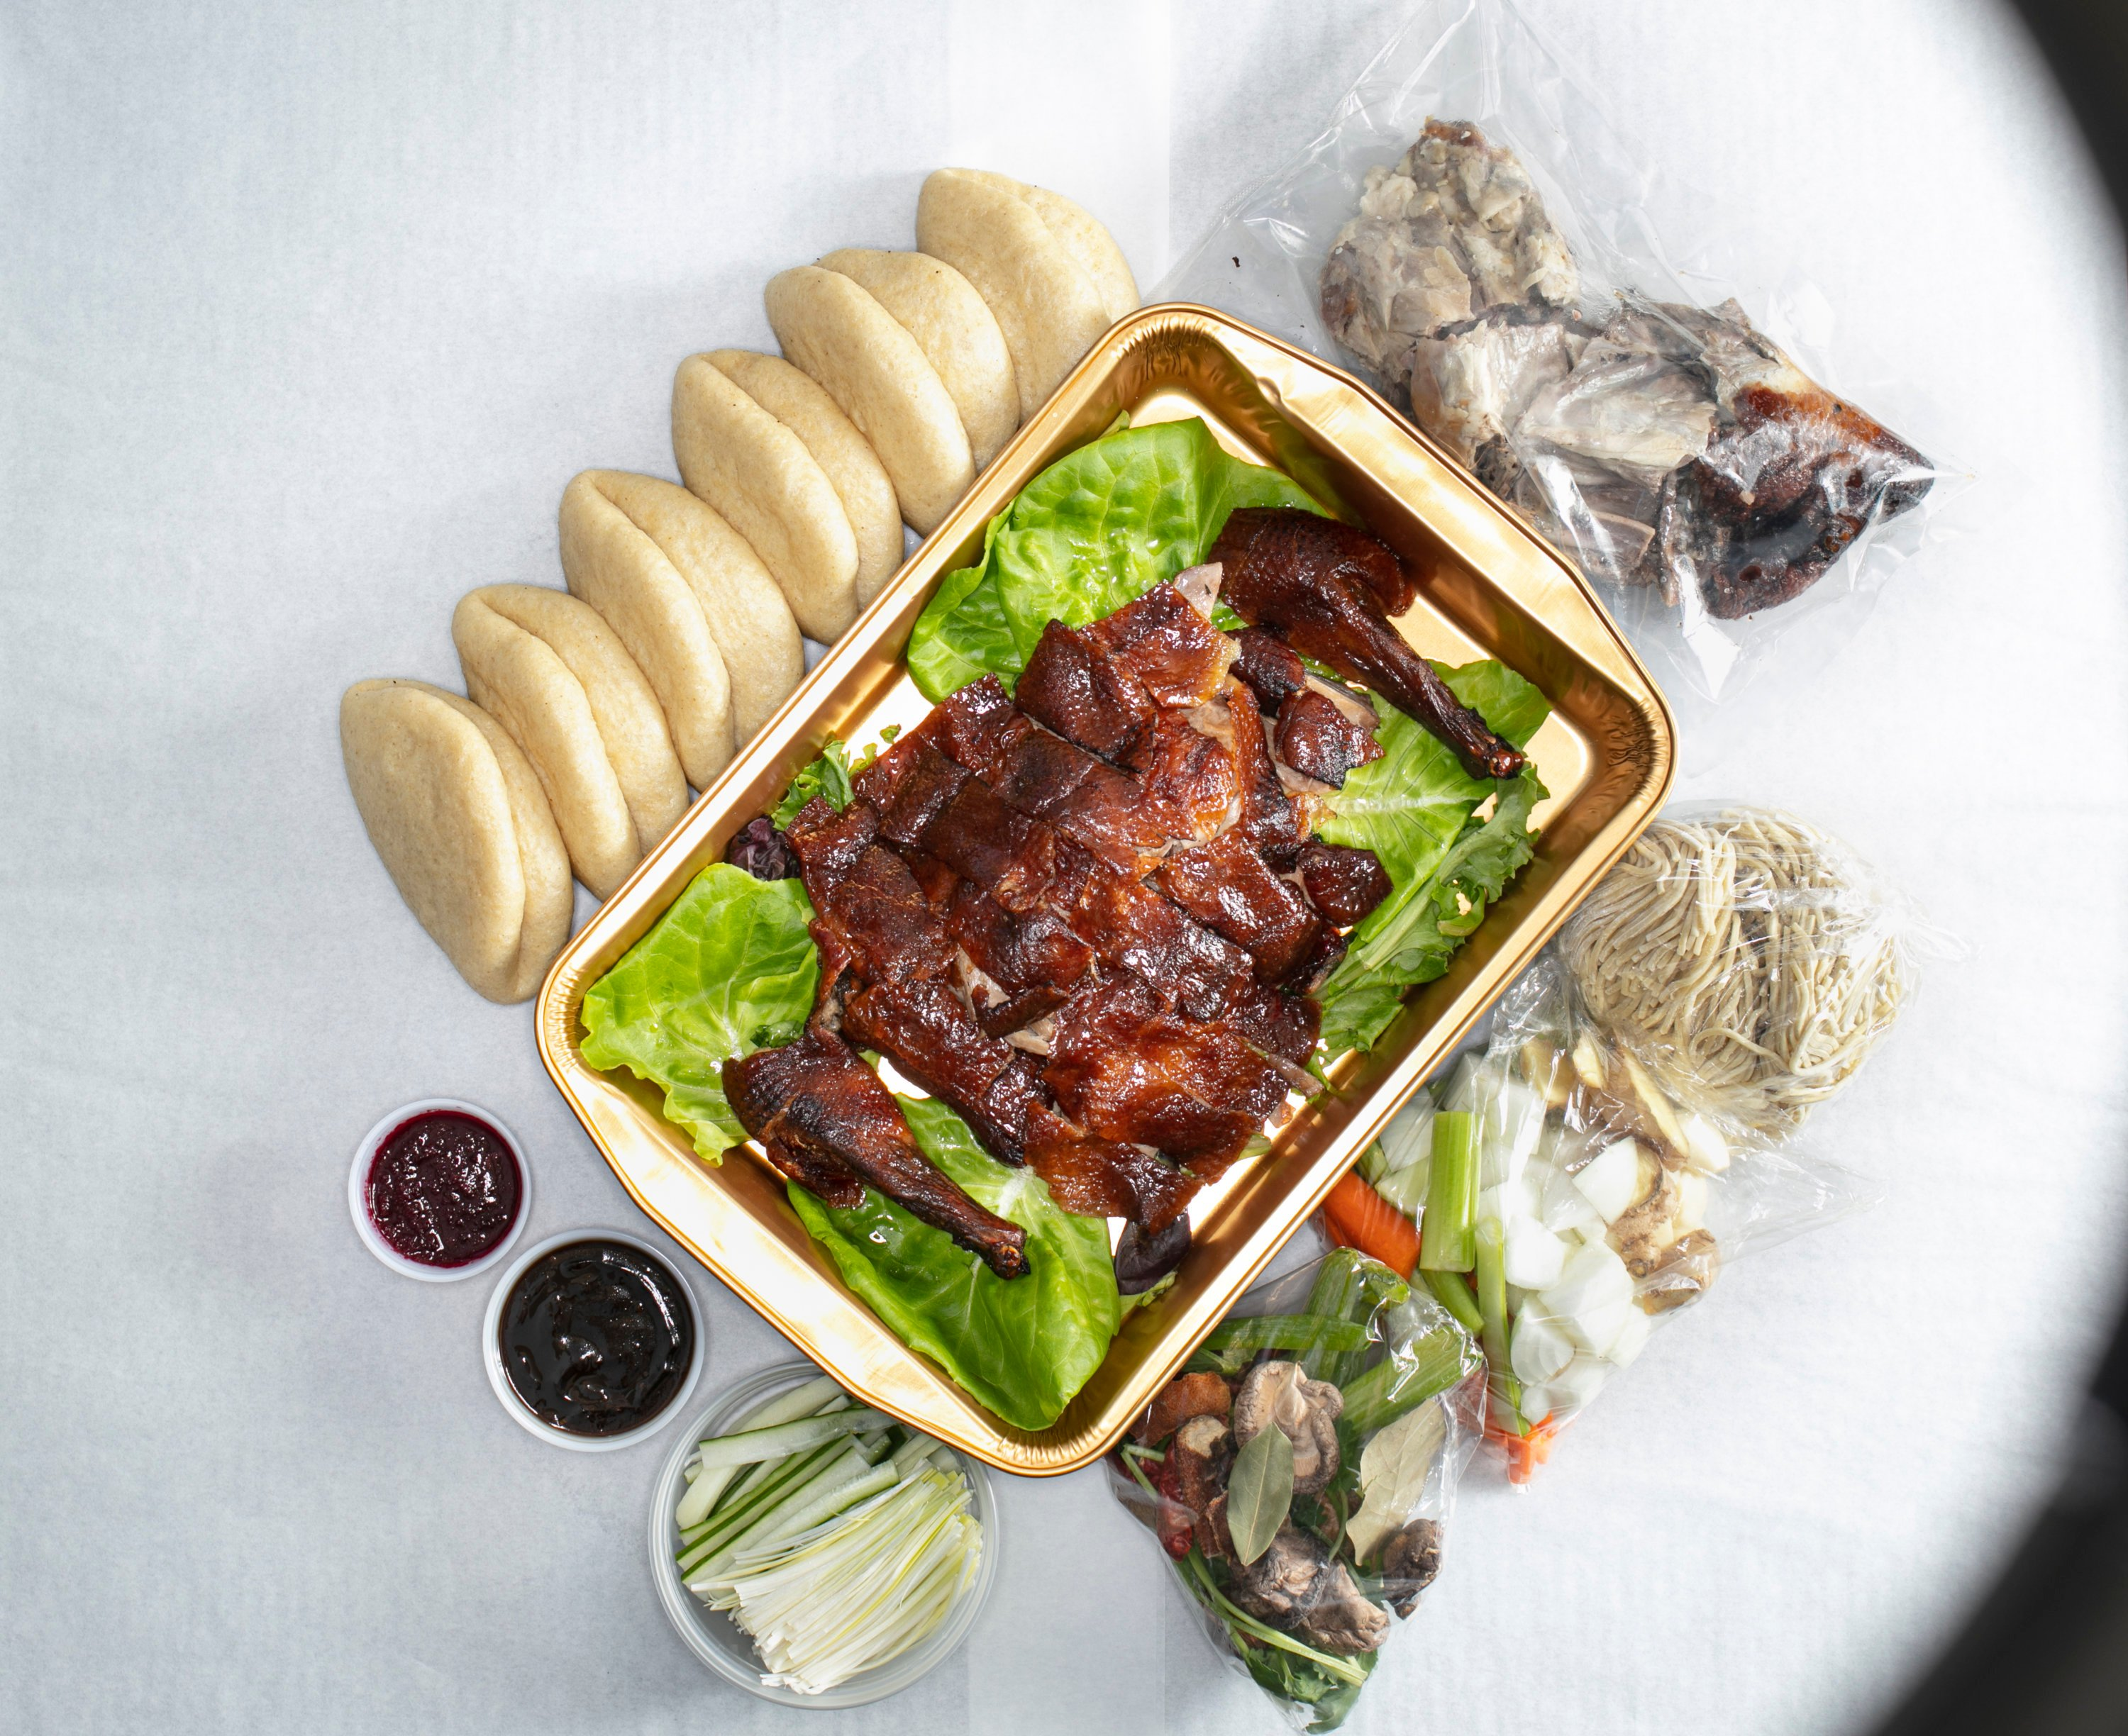 Peking duck kits arrive with buns and housemade noodles. Photo by Melissa Hom.